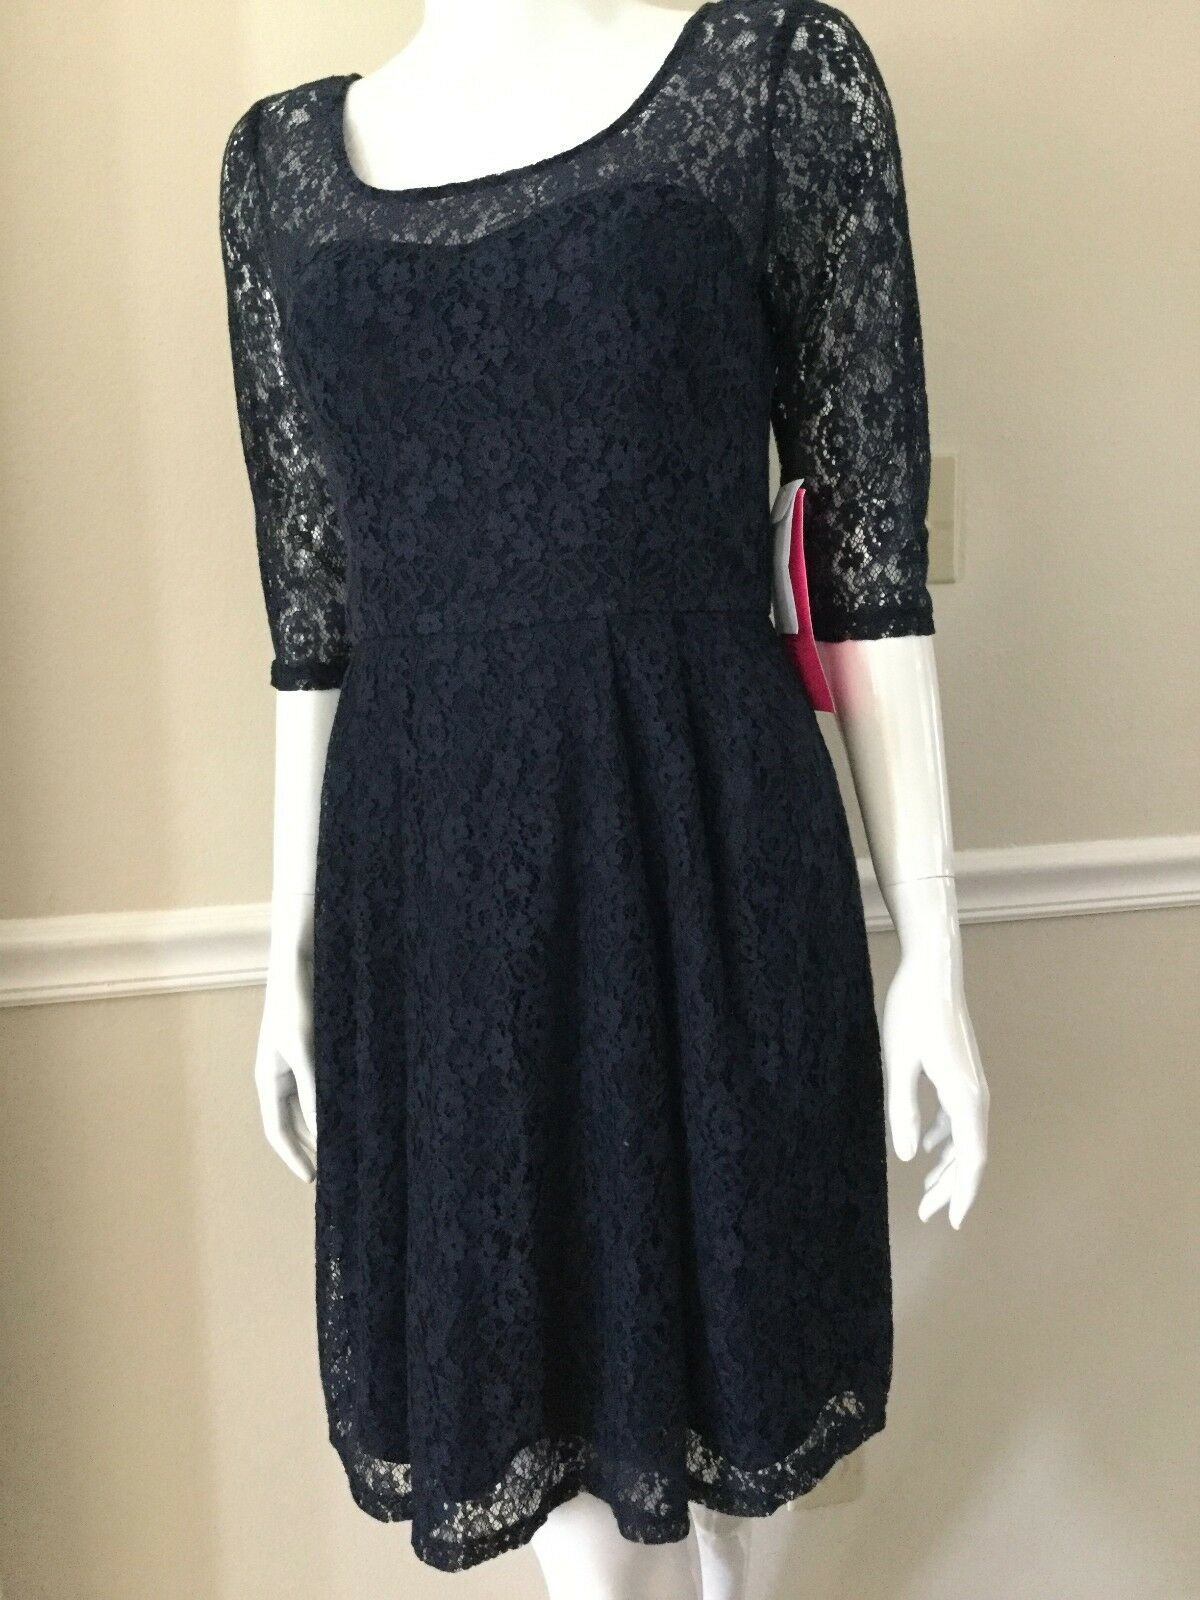 NWT BETSEY JOHNSON WOMEN Sz8 LACE ILLUSION YOKE 3 4 SLEEVE DRESS blueE NAVY